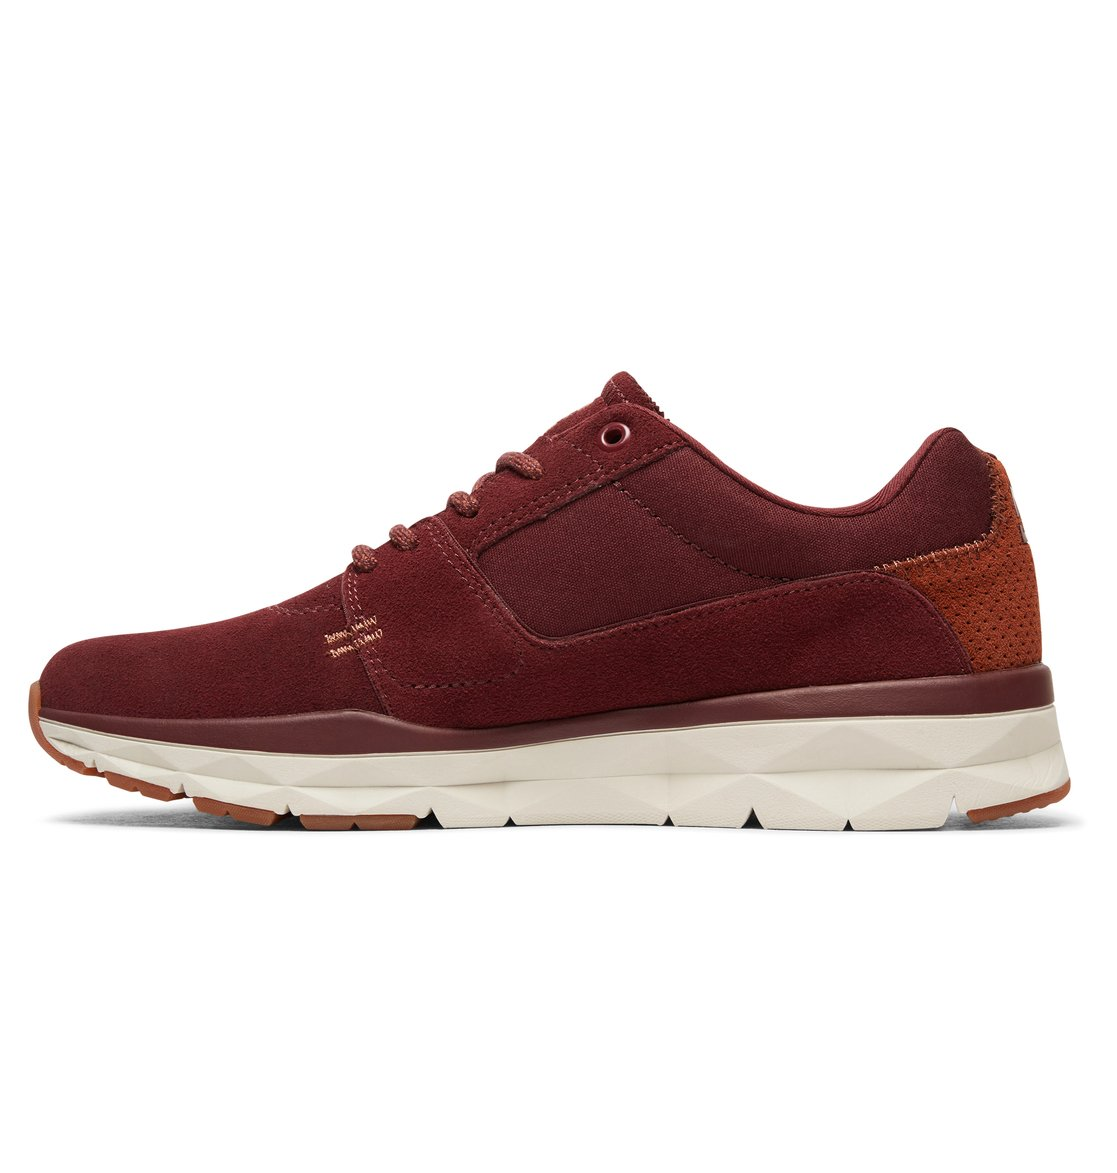 DC Shoes Player LE - Shoes - Zapatos - Hombre - EU 42 dS4bScn6f7